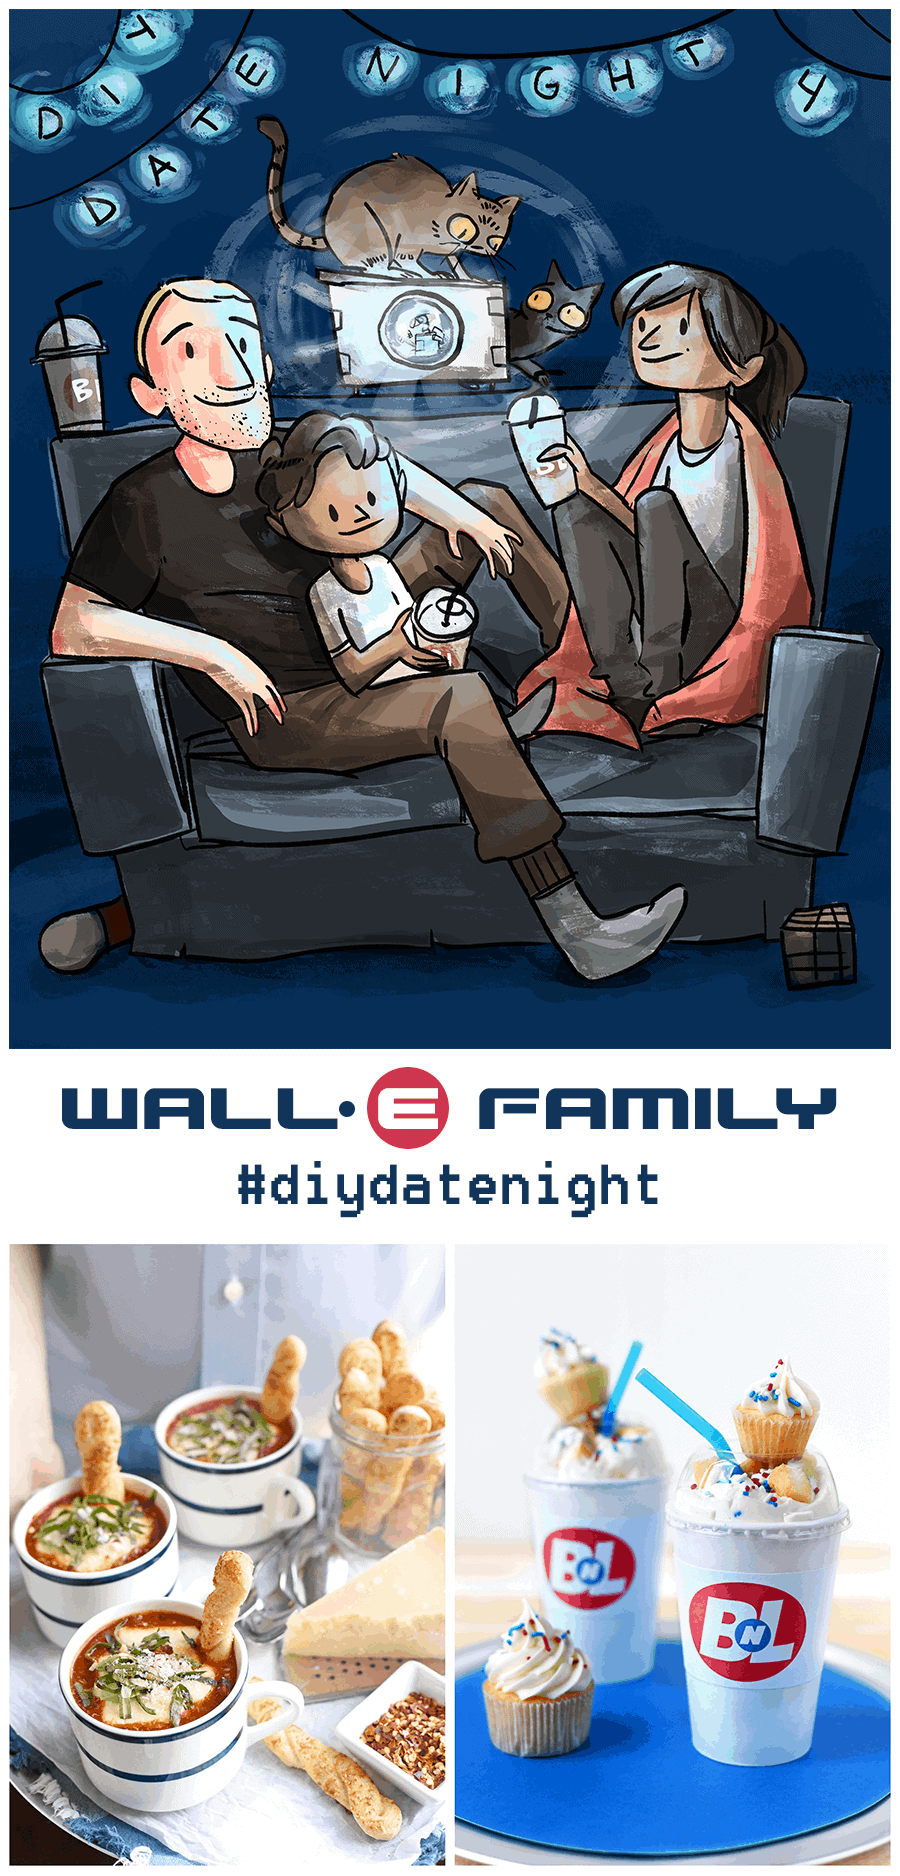 Enjoy a fun family movie night with our Wall-e Family #diydatenight! Watch the movie, eat food in a cup and go on a Wall-e themed scavenger hunt!